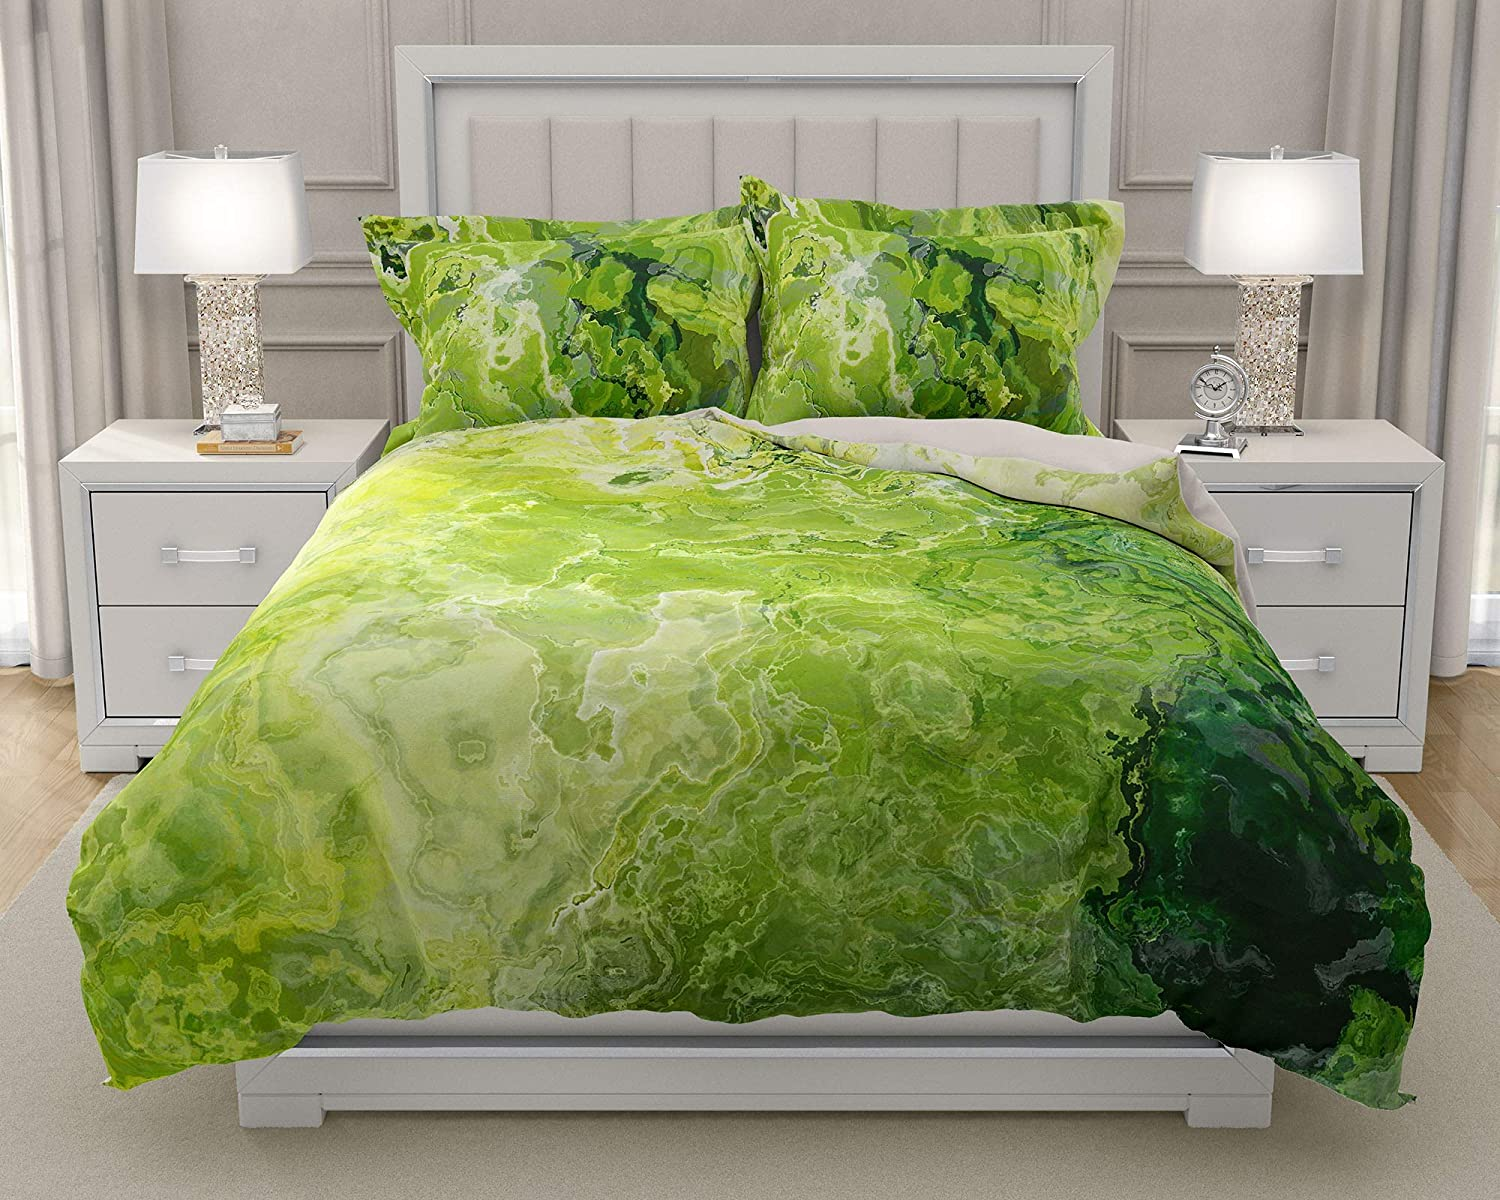 Image of Home and Kitchen King or Queen 3 pc Duvet Cover Set with abstract art, Green Daze